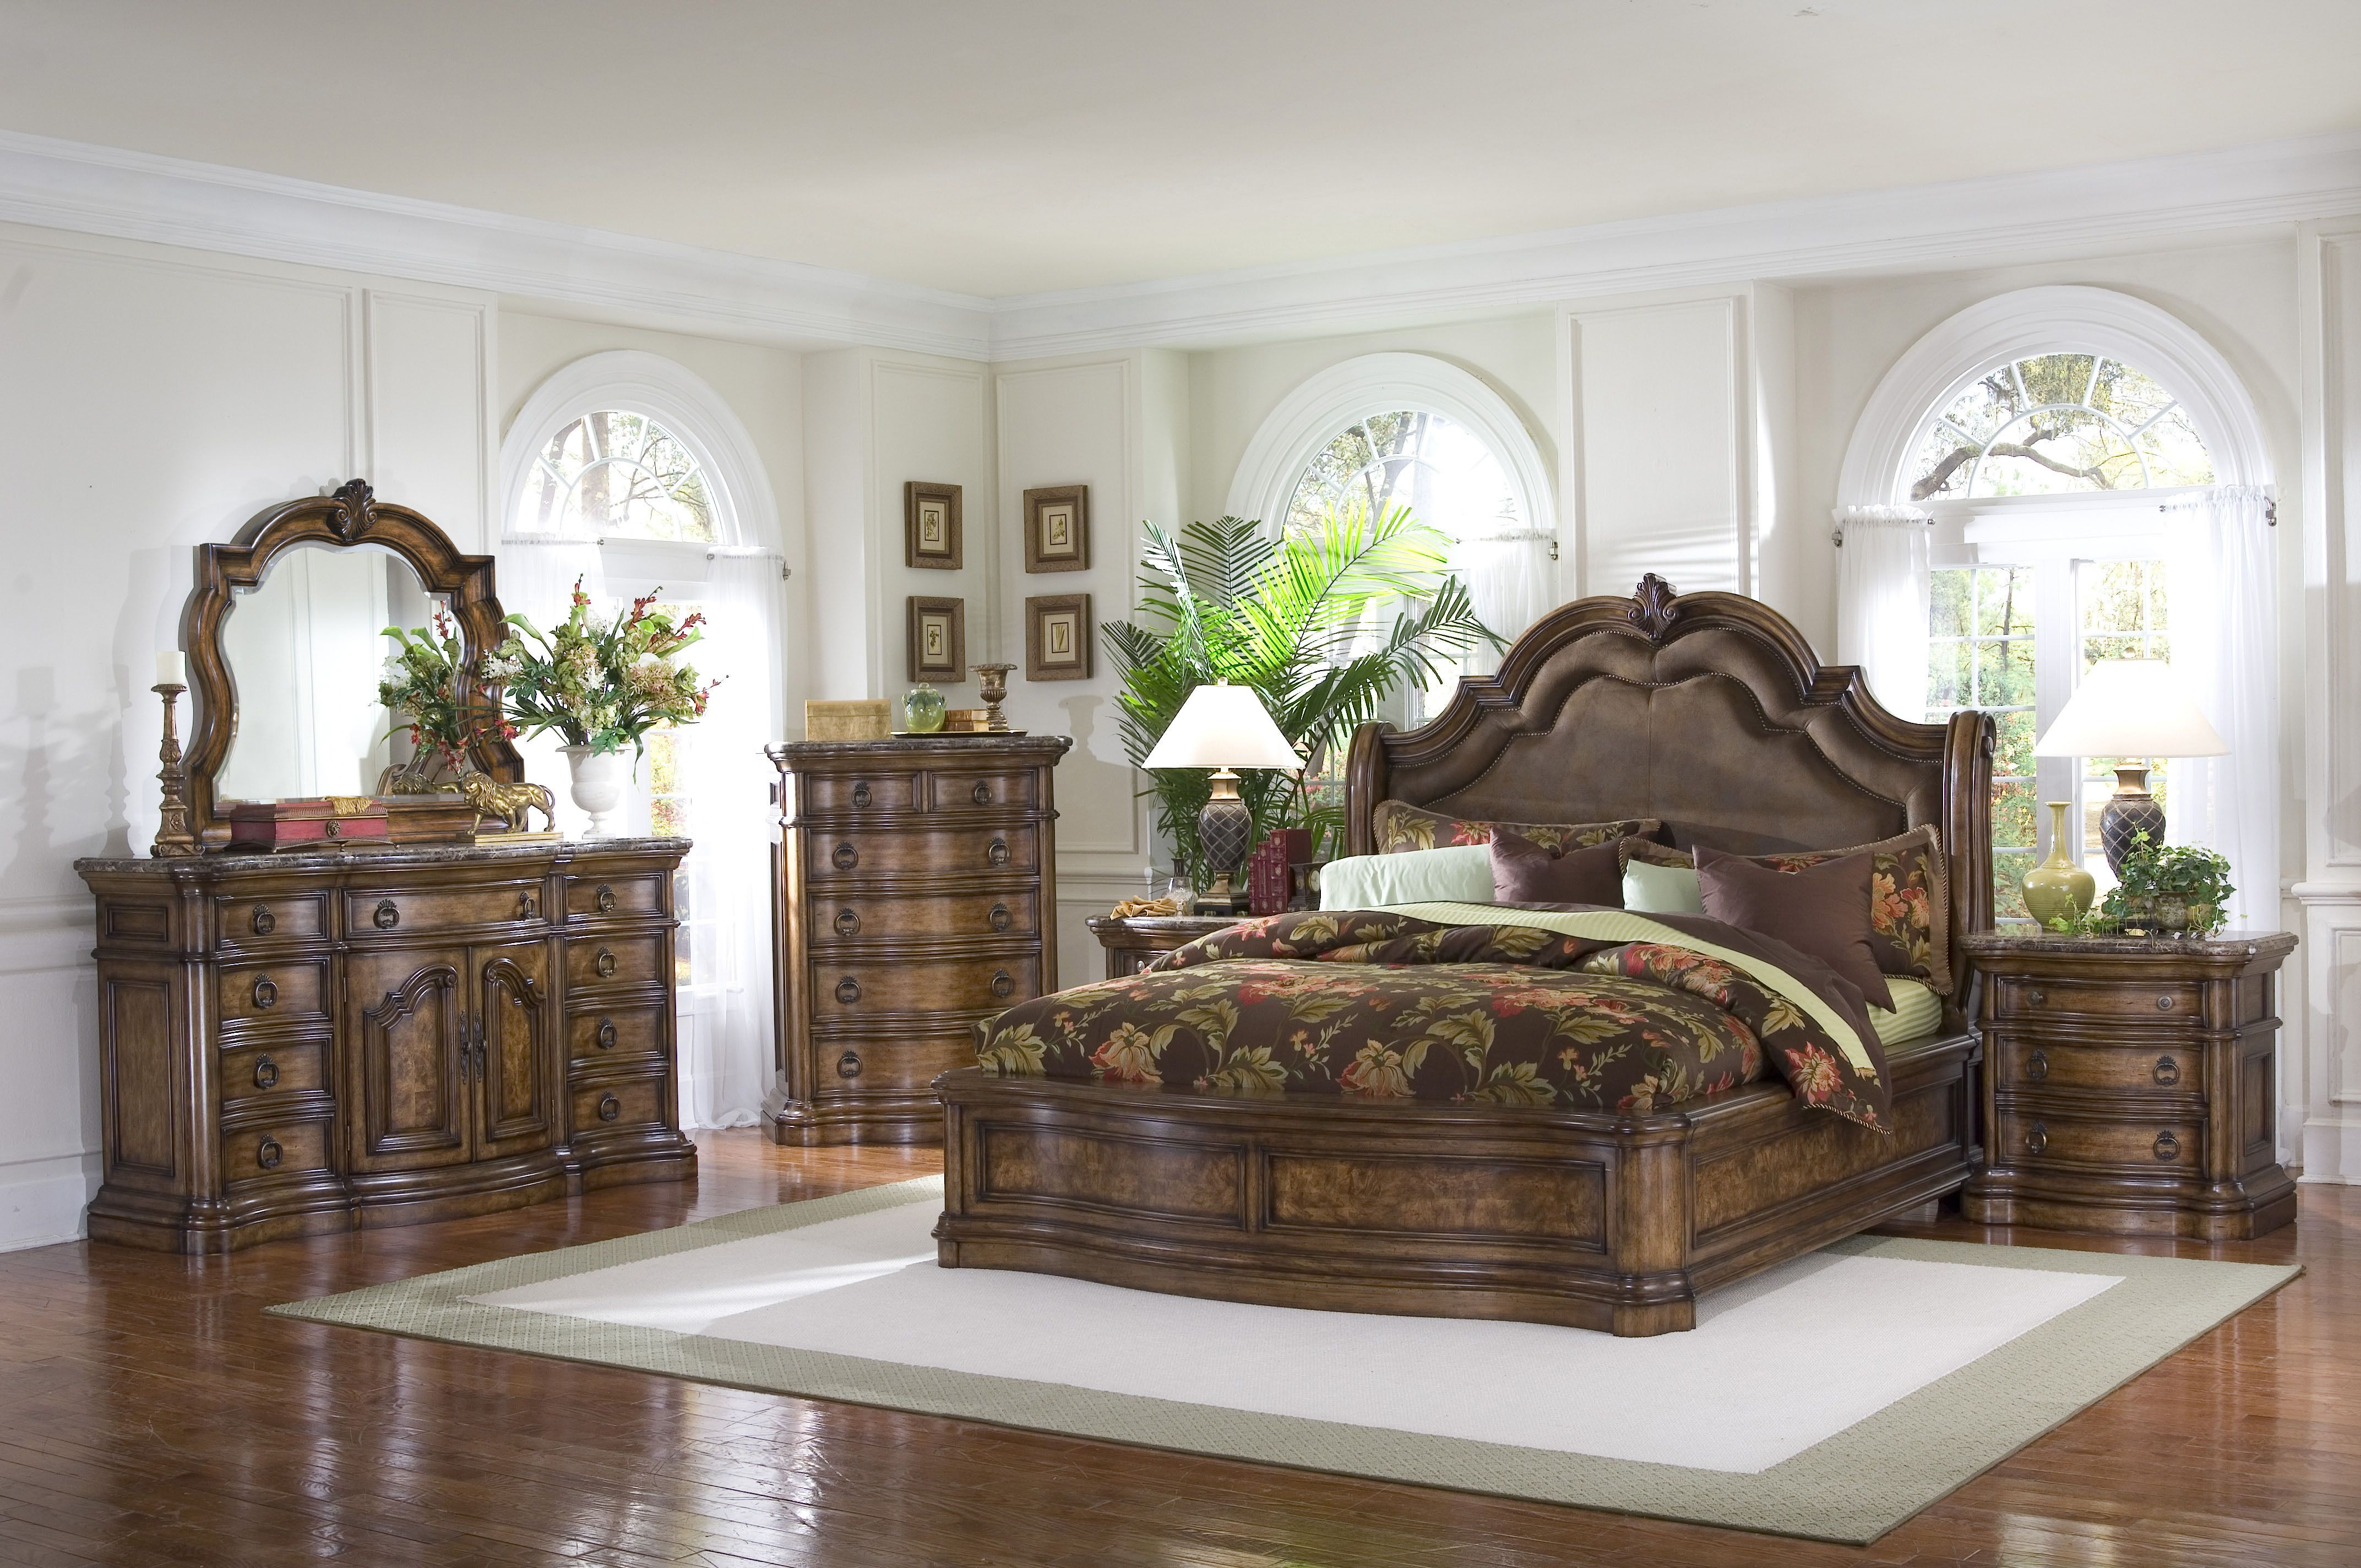 We're talking up to 60 percent off, people! The Most Expensives Bedrooms Sets From El Dorado ...